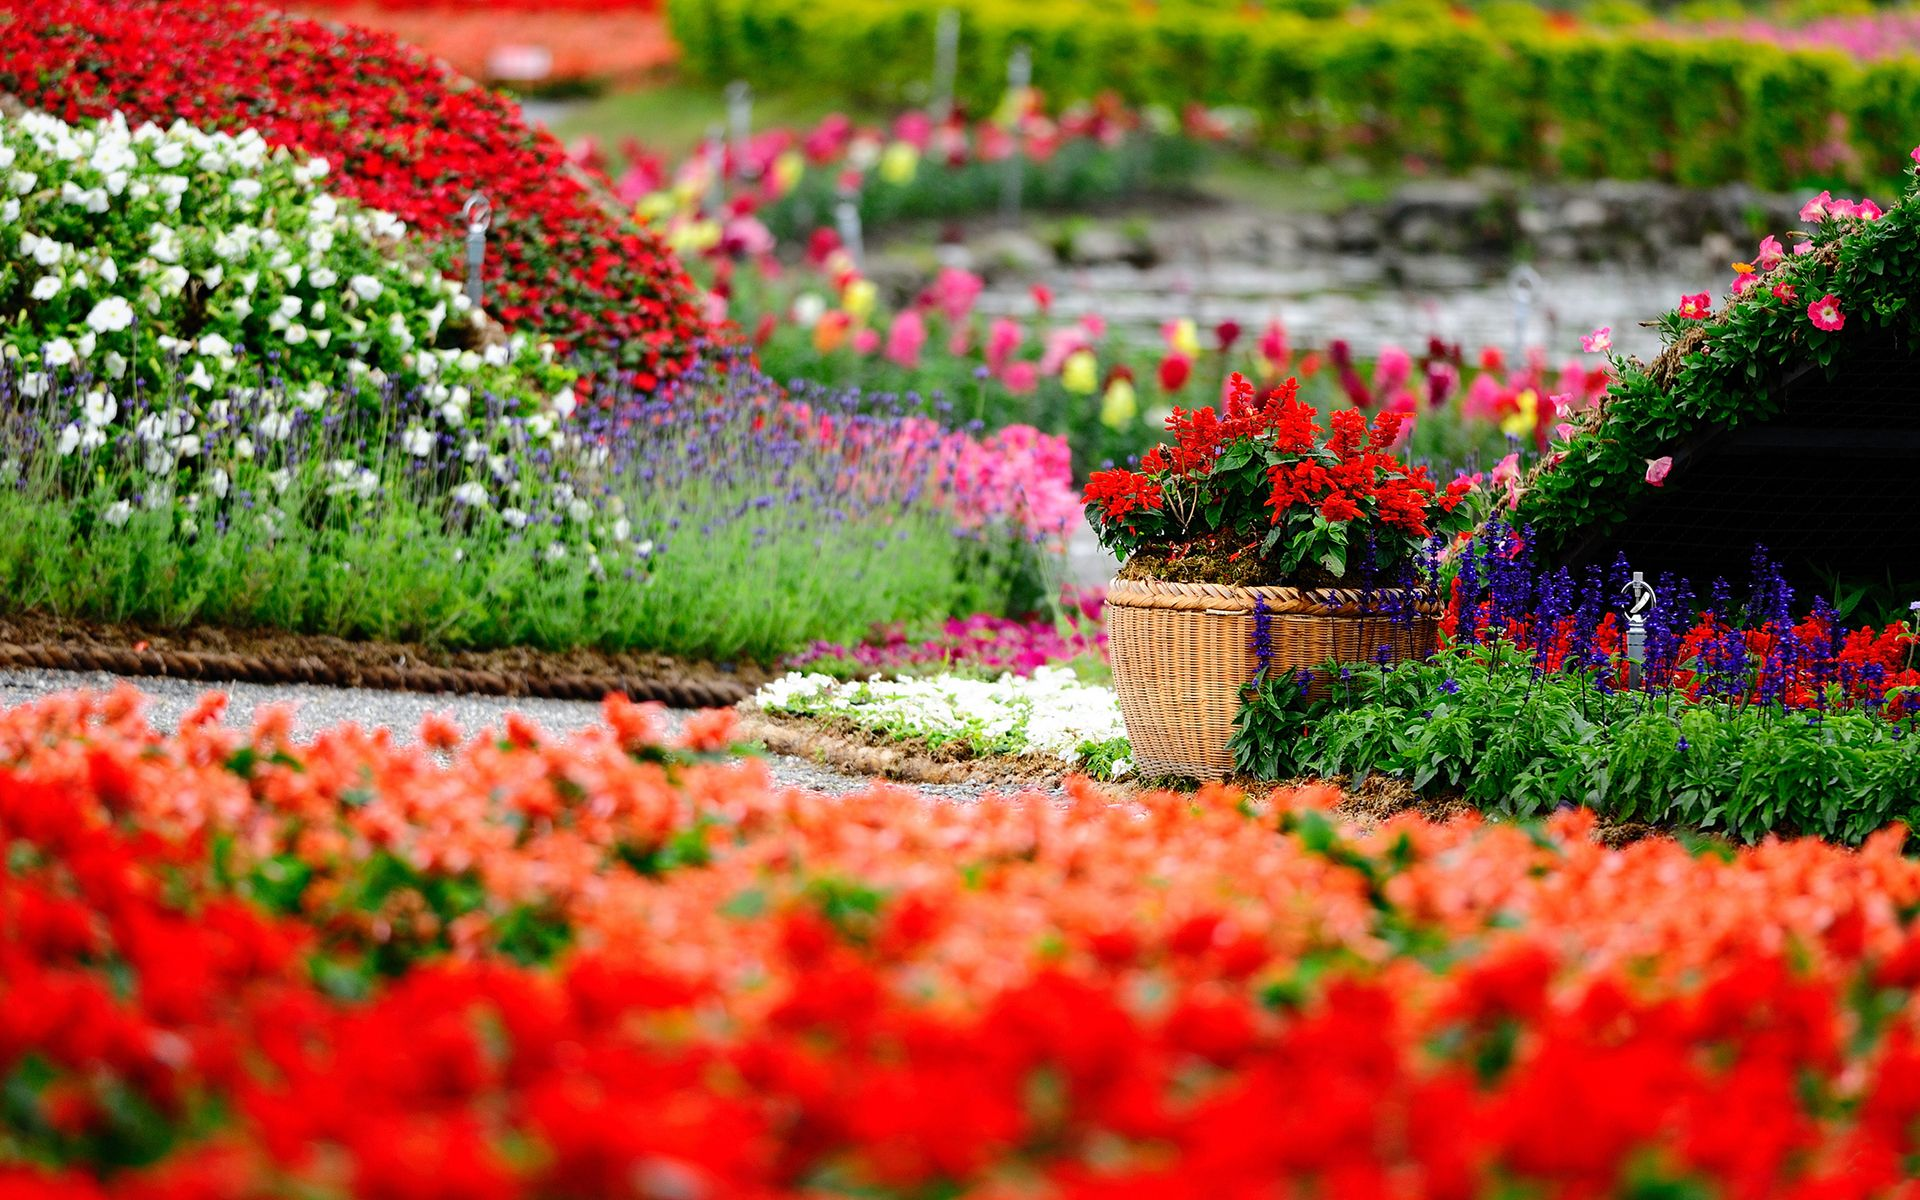 Colorful flower park wallpaper wide wallpaper beautiful images colorful flower park wallpaper wide wallpaper izmirmasajfo